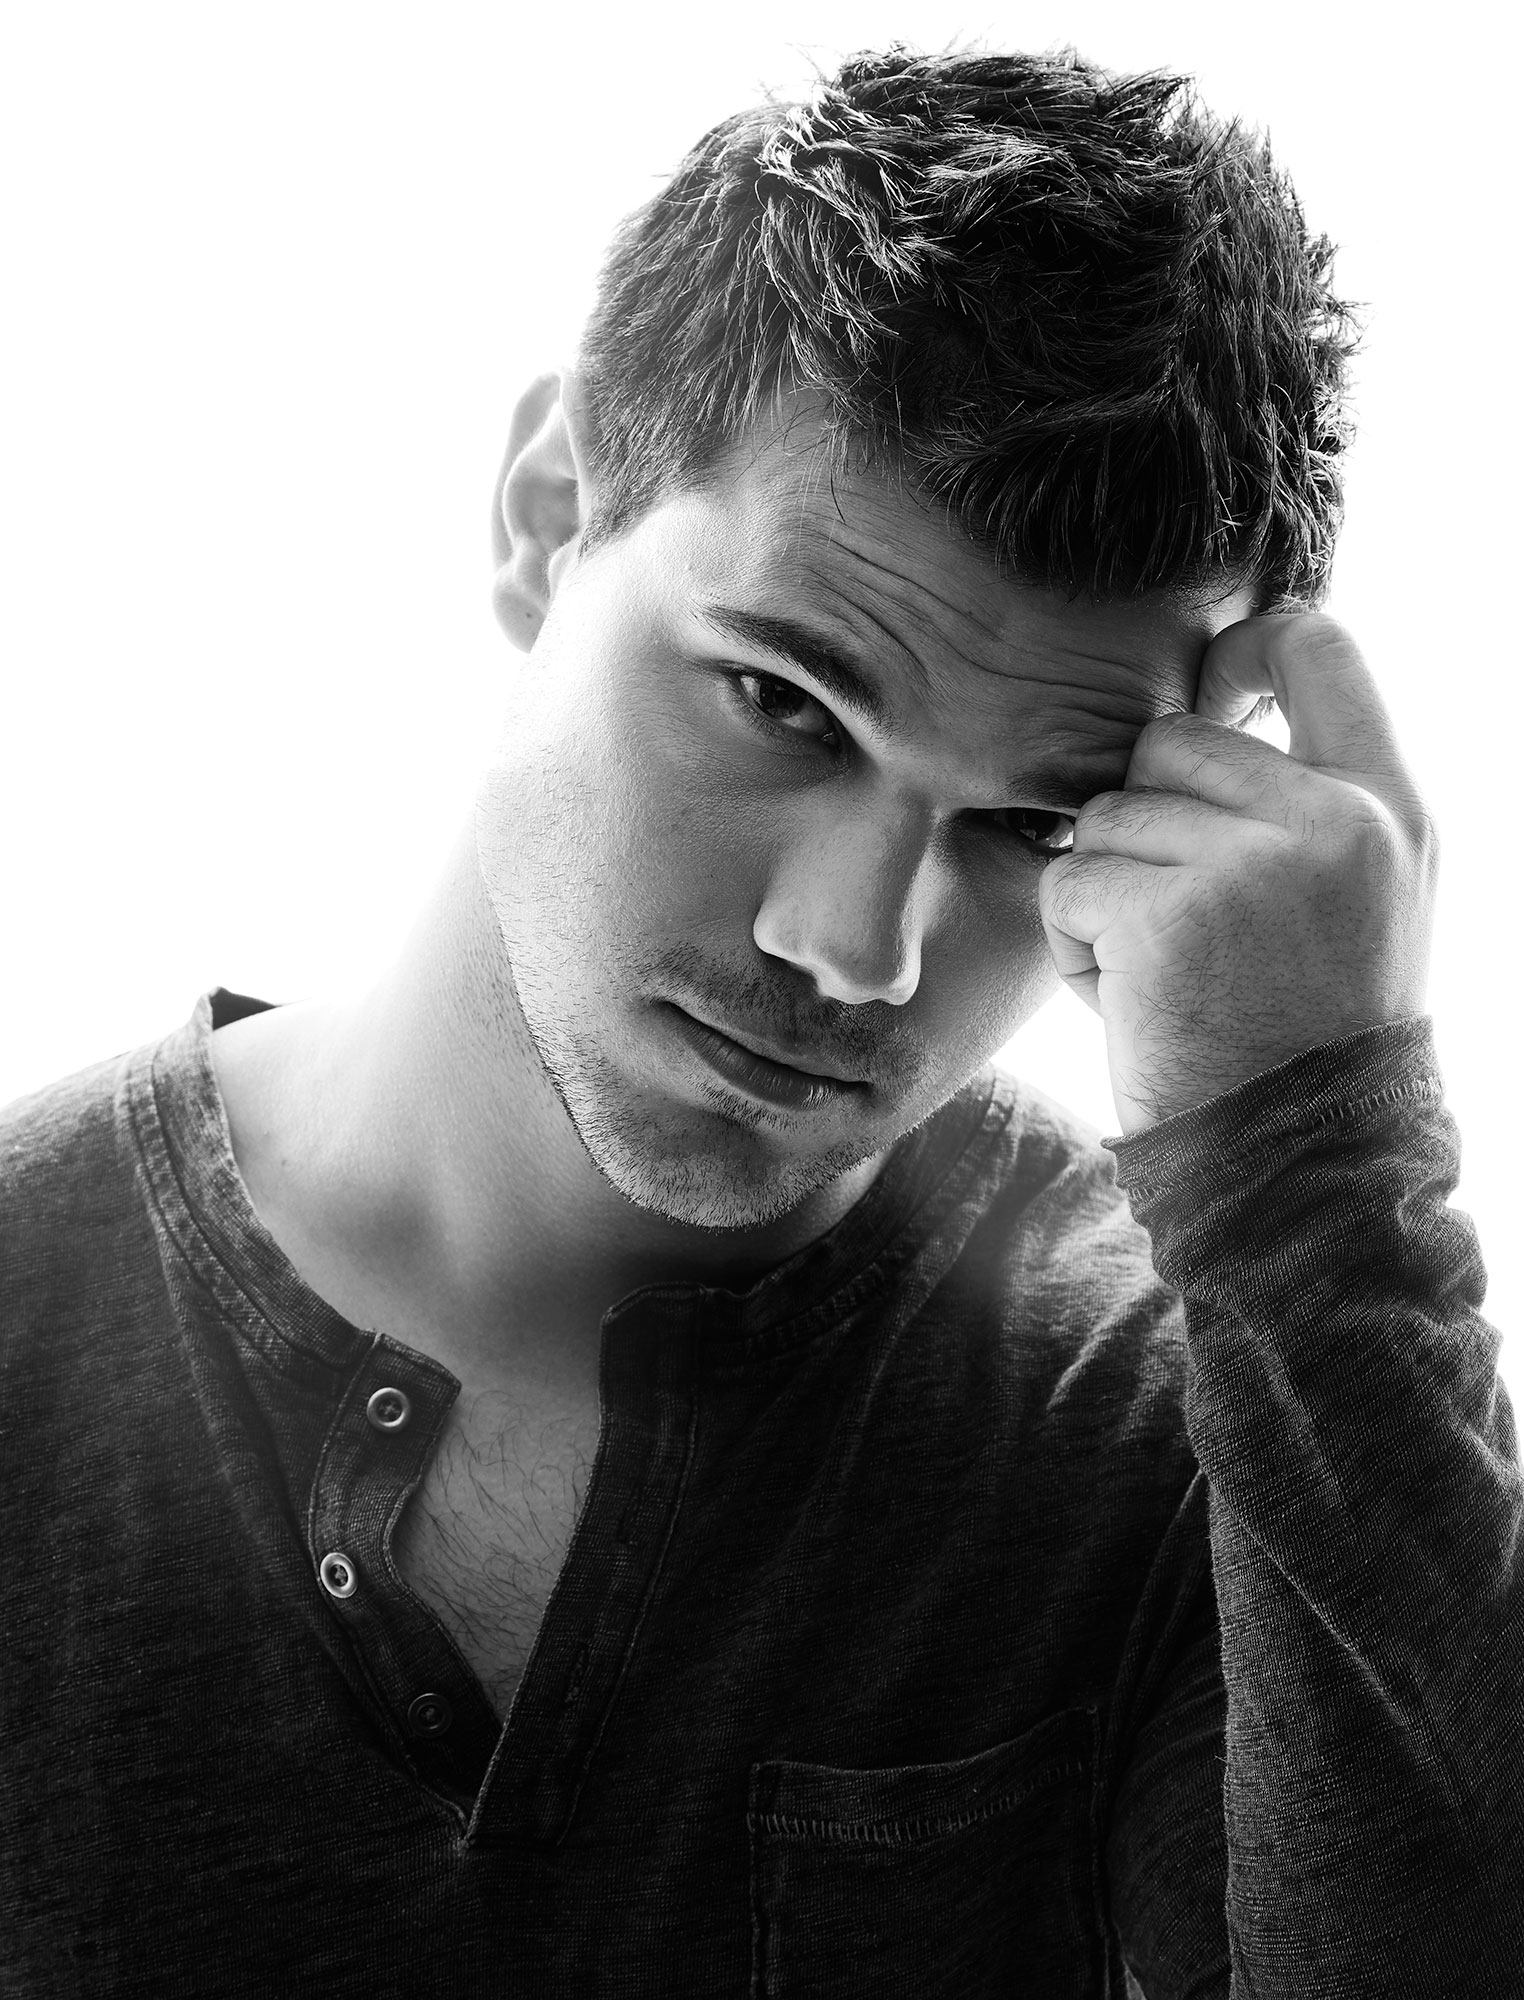 Taylor-Lautner-by-robert-ascroft